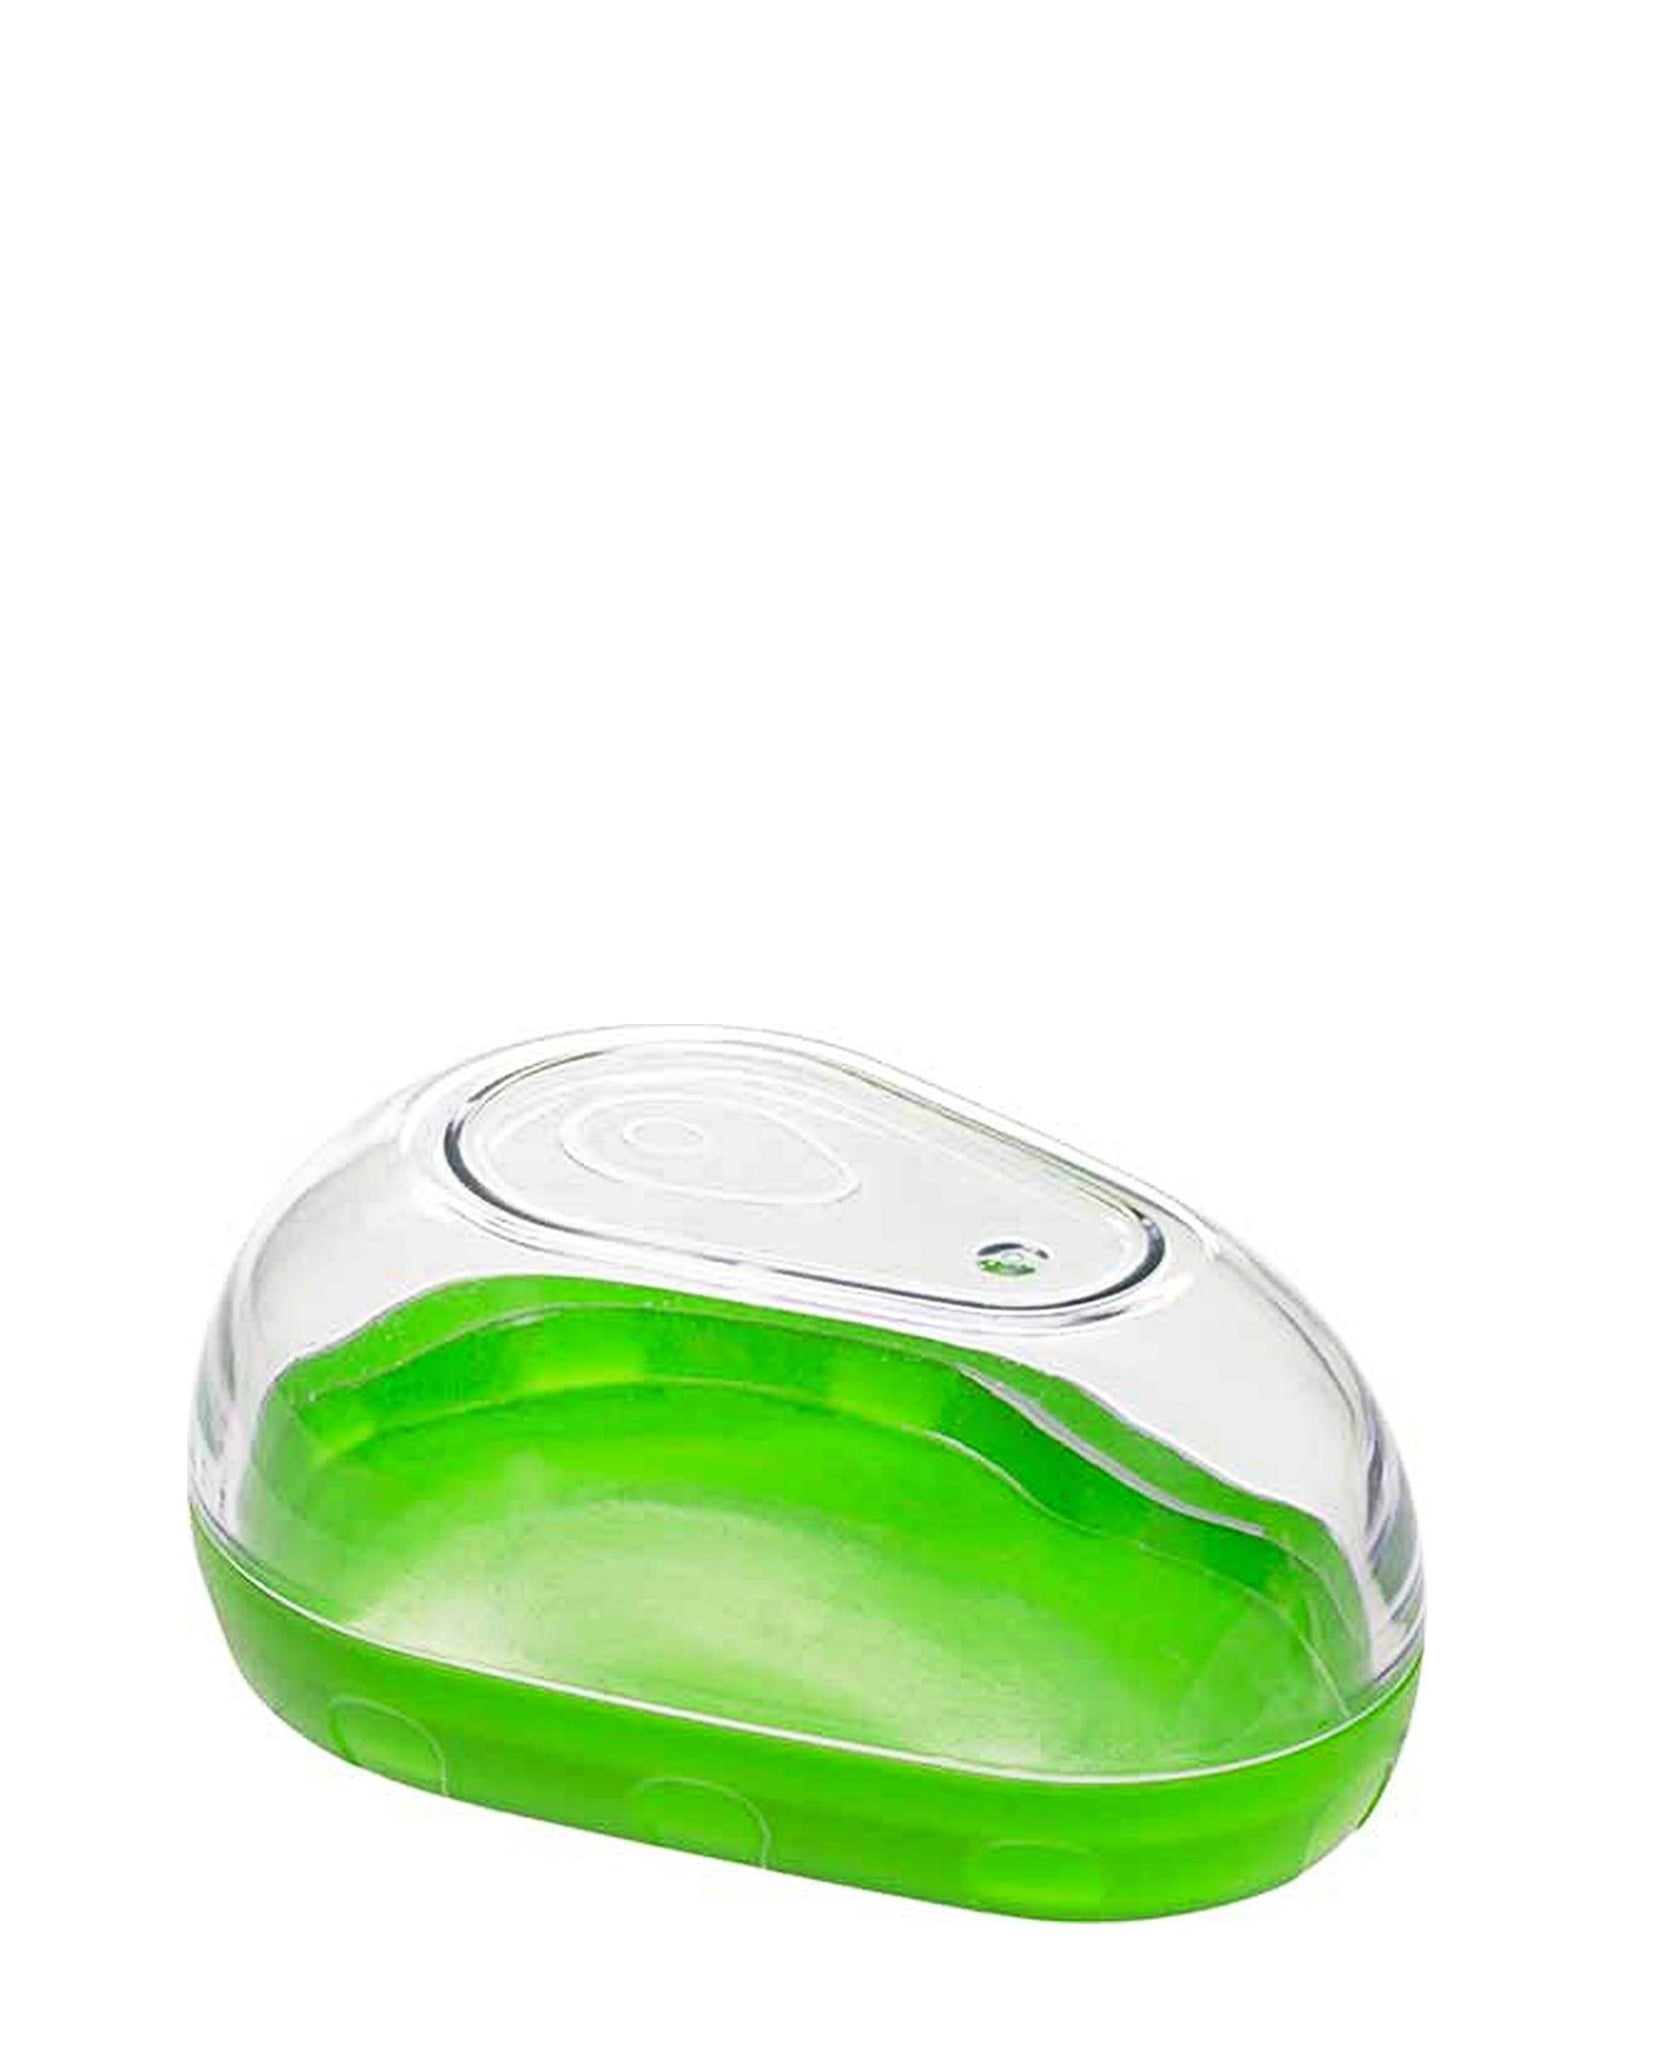 PROGRESSIVE Progressive Avocado Keeper - Green